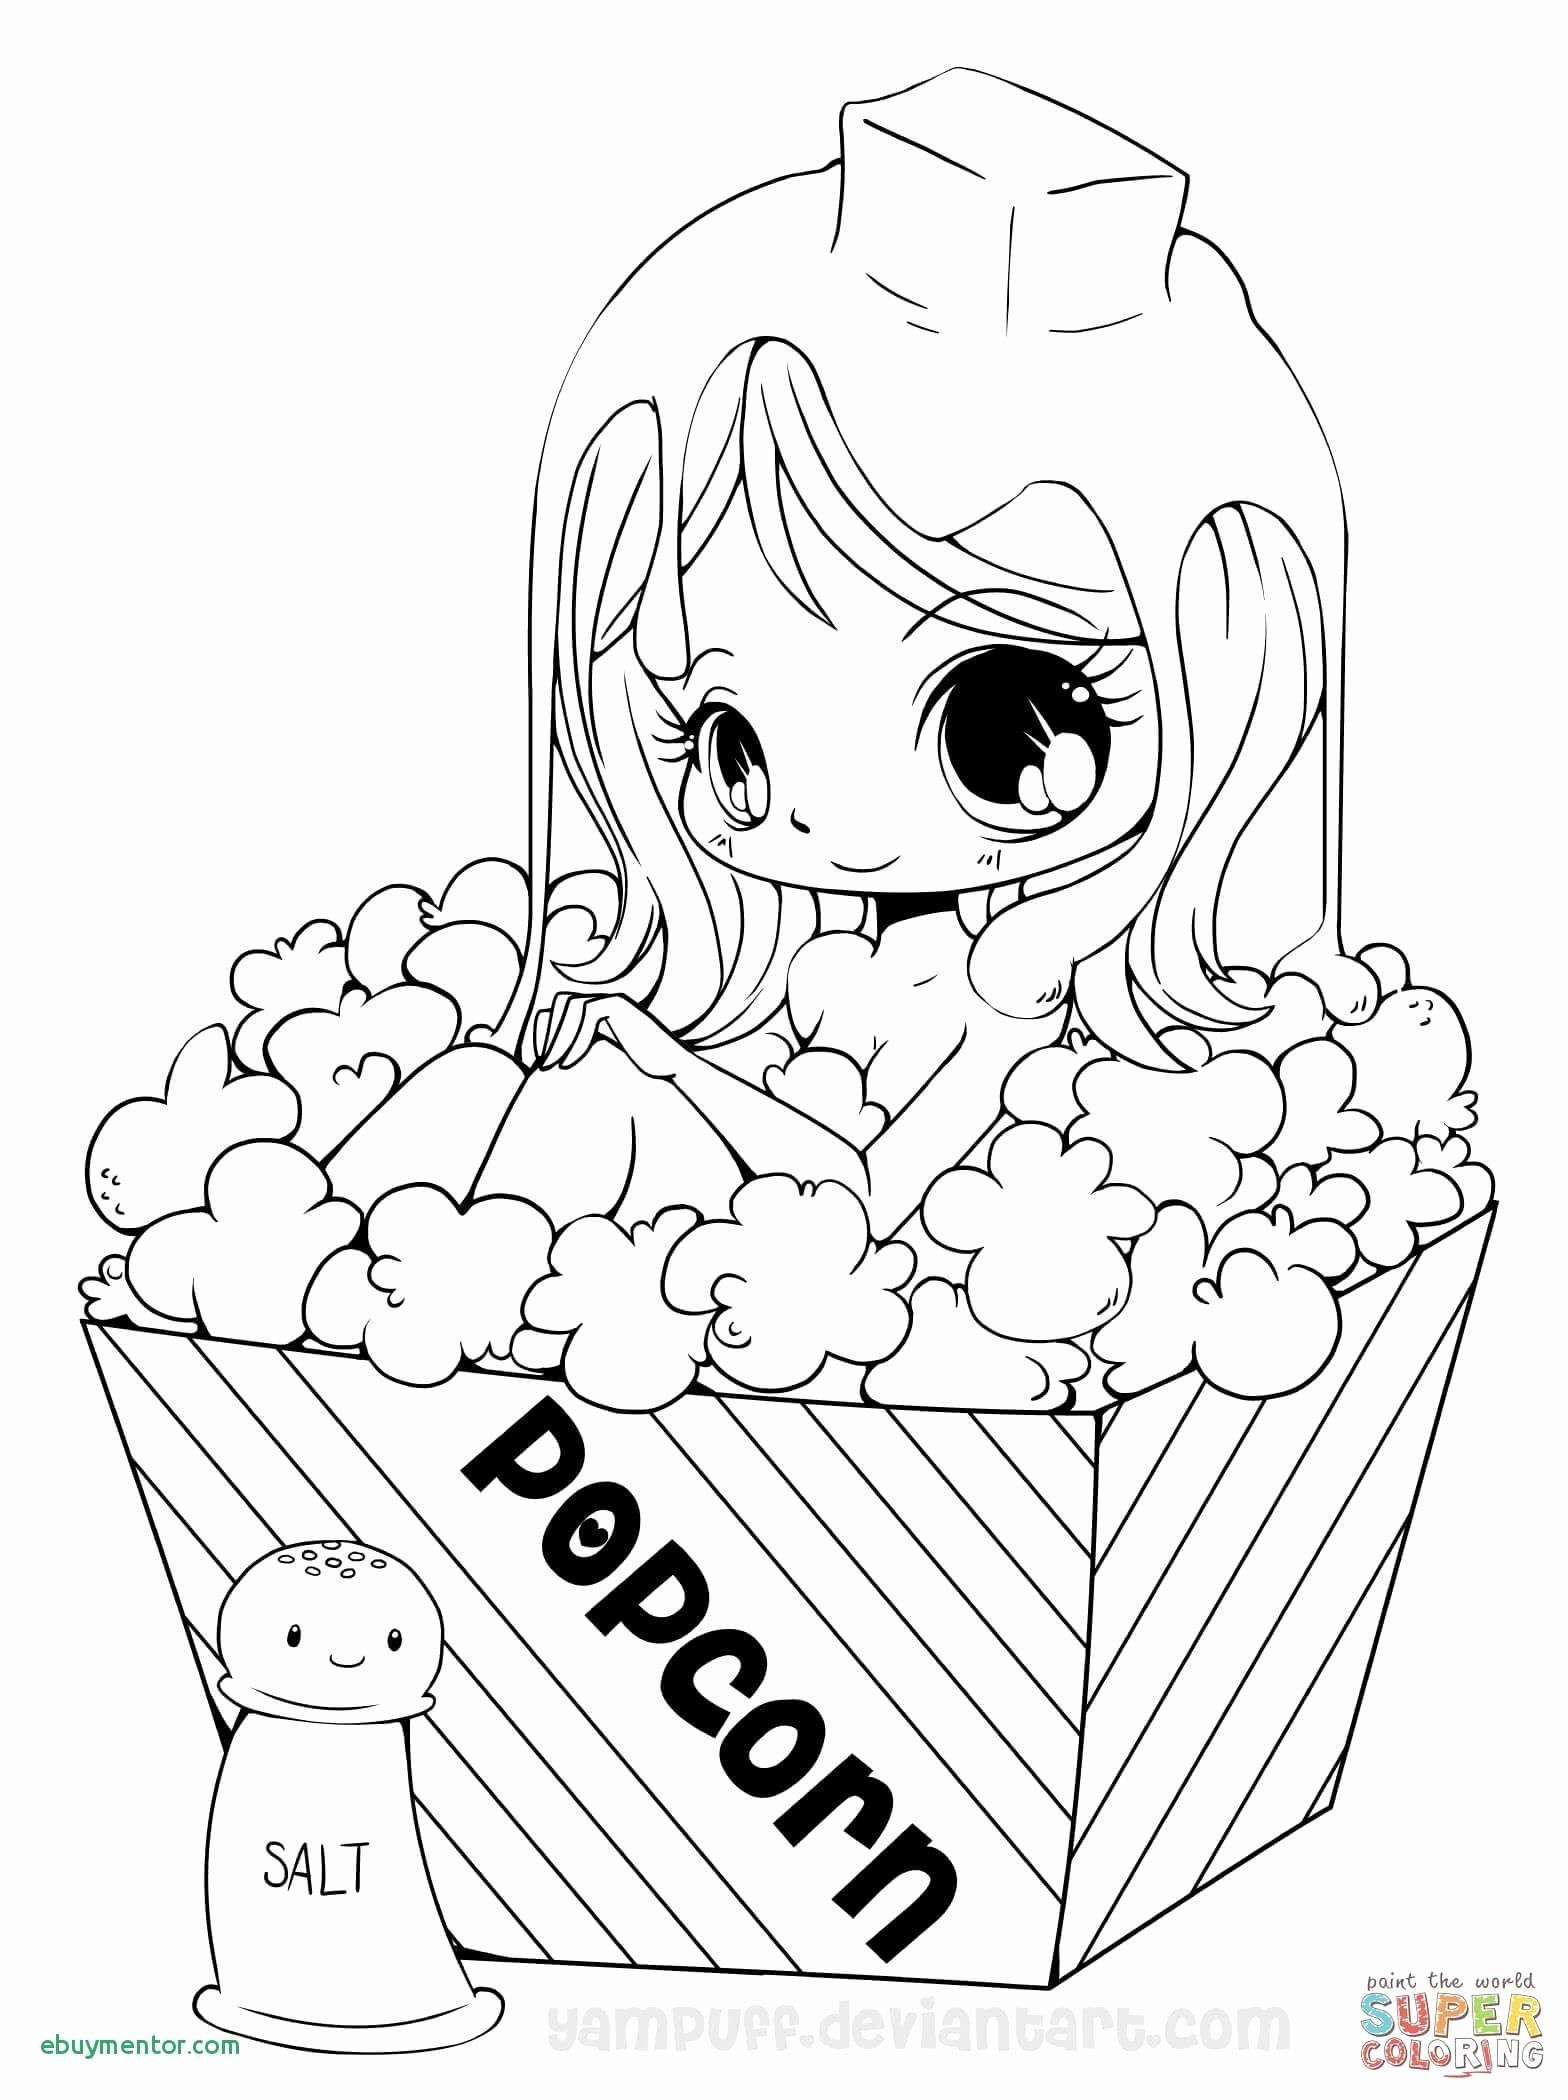 Cute Animals Coloring Book Best Of 21 Cute Anime Coloring Pages Downlo Superhero Coloring Pages Princess Coloring Pages Witch Coloring Pages